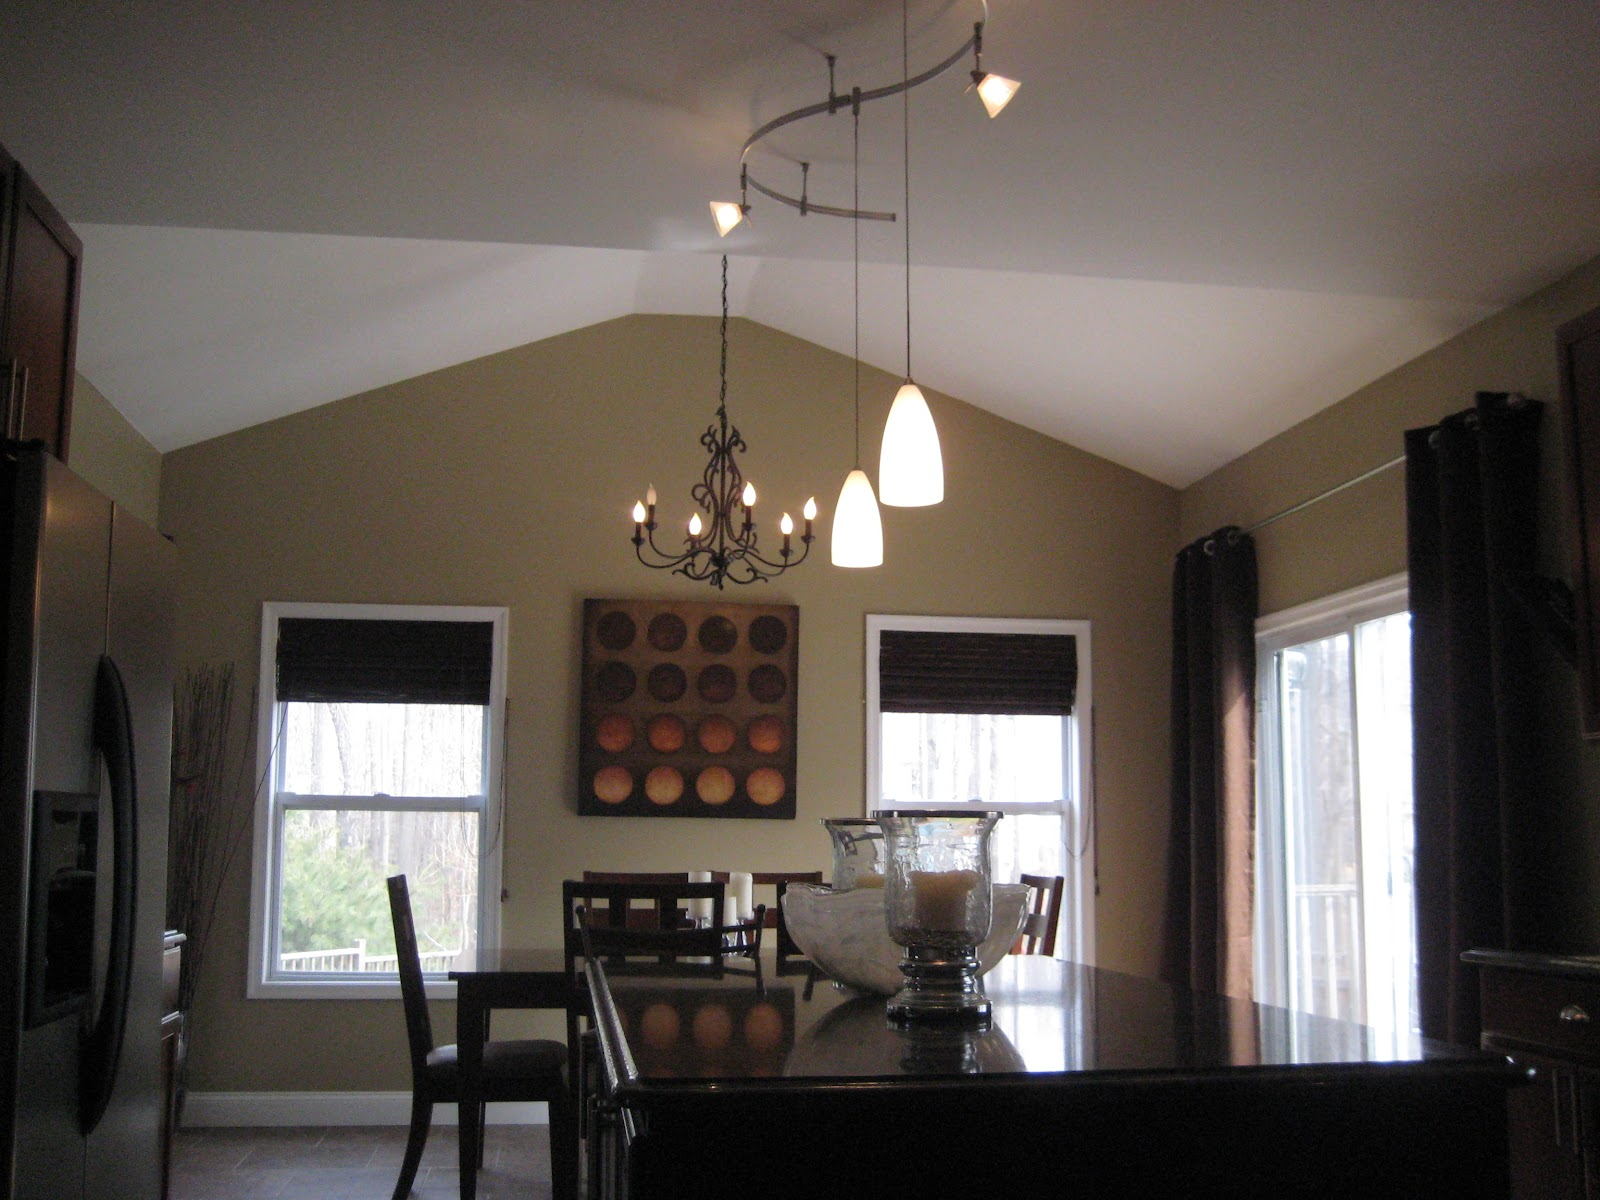 kitchen track lighting fixtures kitchen track lighting mash up via blogspotcom fixtures - Blogspot Interior Design